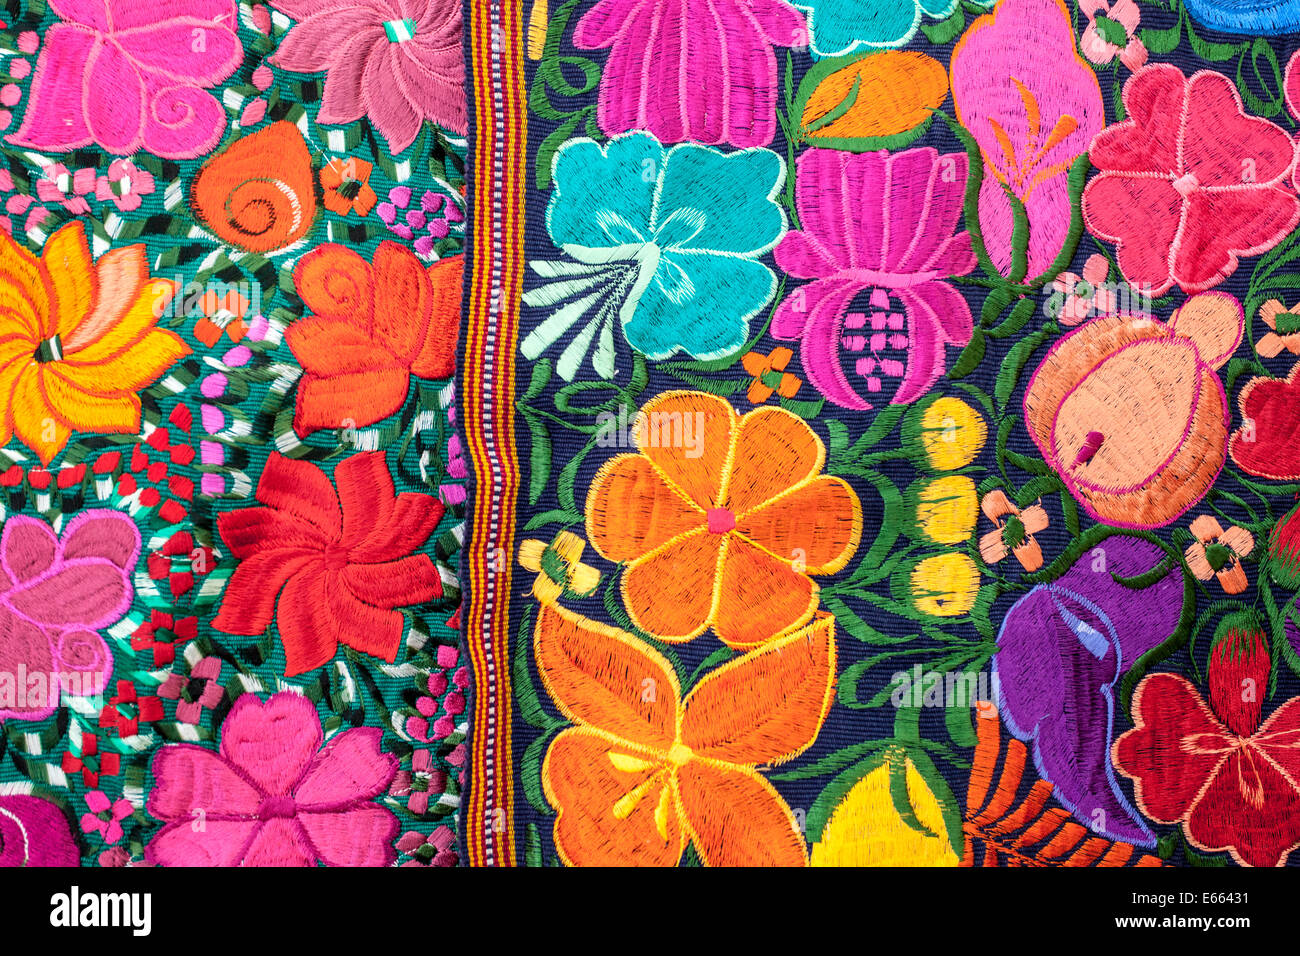 Detail of a colorful blanket for sale in the market at San Cristobal de las Casas, Chiapas, Mexico. - Stock Image